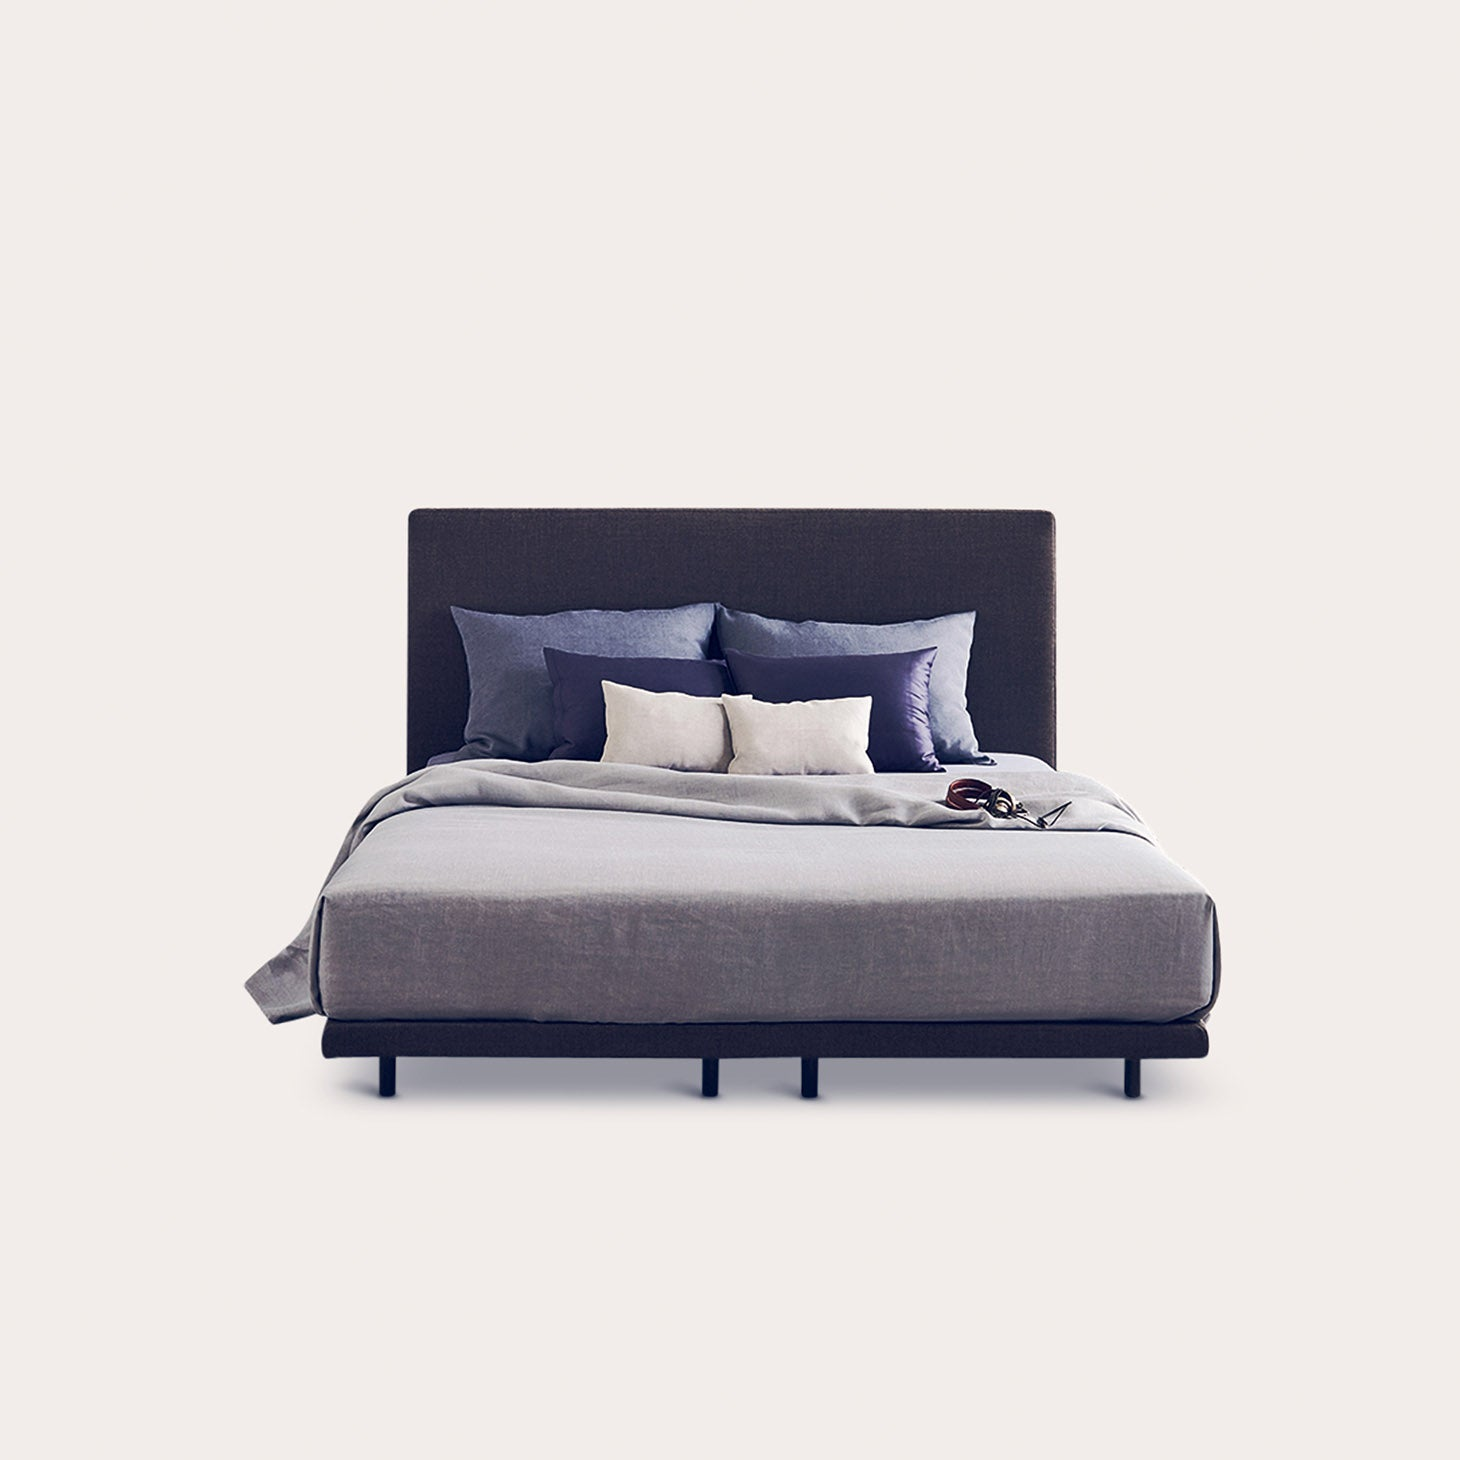 Metis Beds Paolo Piva Designer Furniture Sku: 758-110-10045